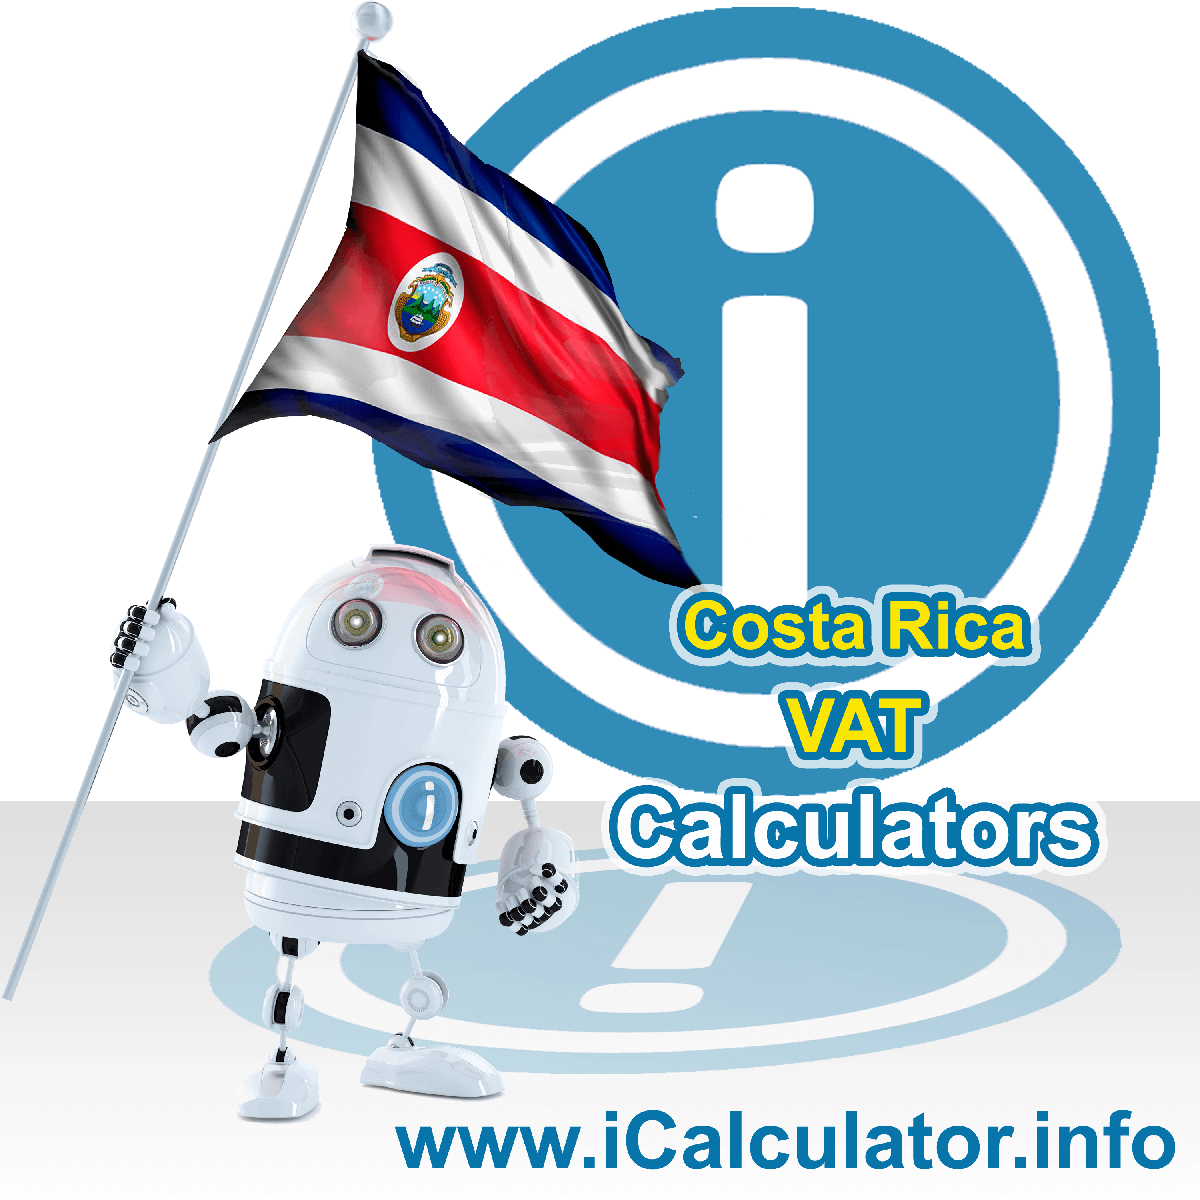 Costa Rica VAT Calculator. This image shows the Costa Rica flag and information relating to the VAT formula used for calculating Value Added Tax in Costa Rica using the Costa Rica VAT Calculator in 2021